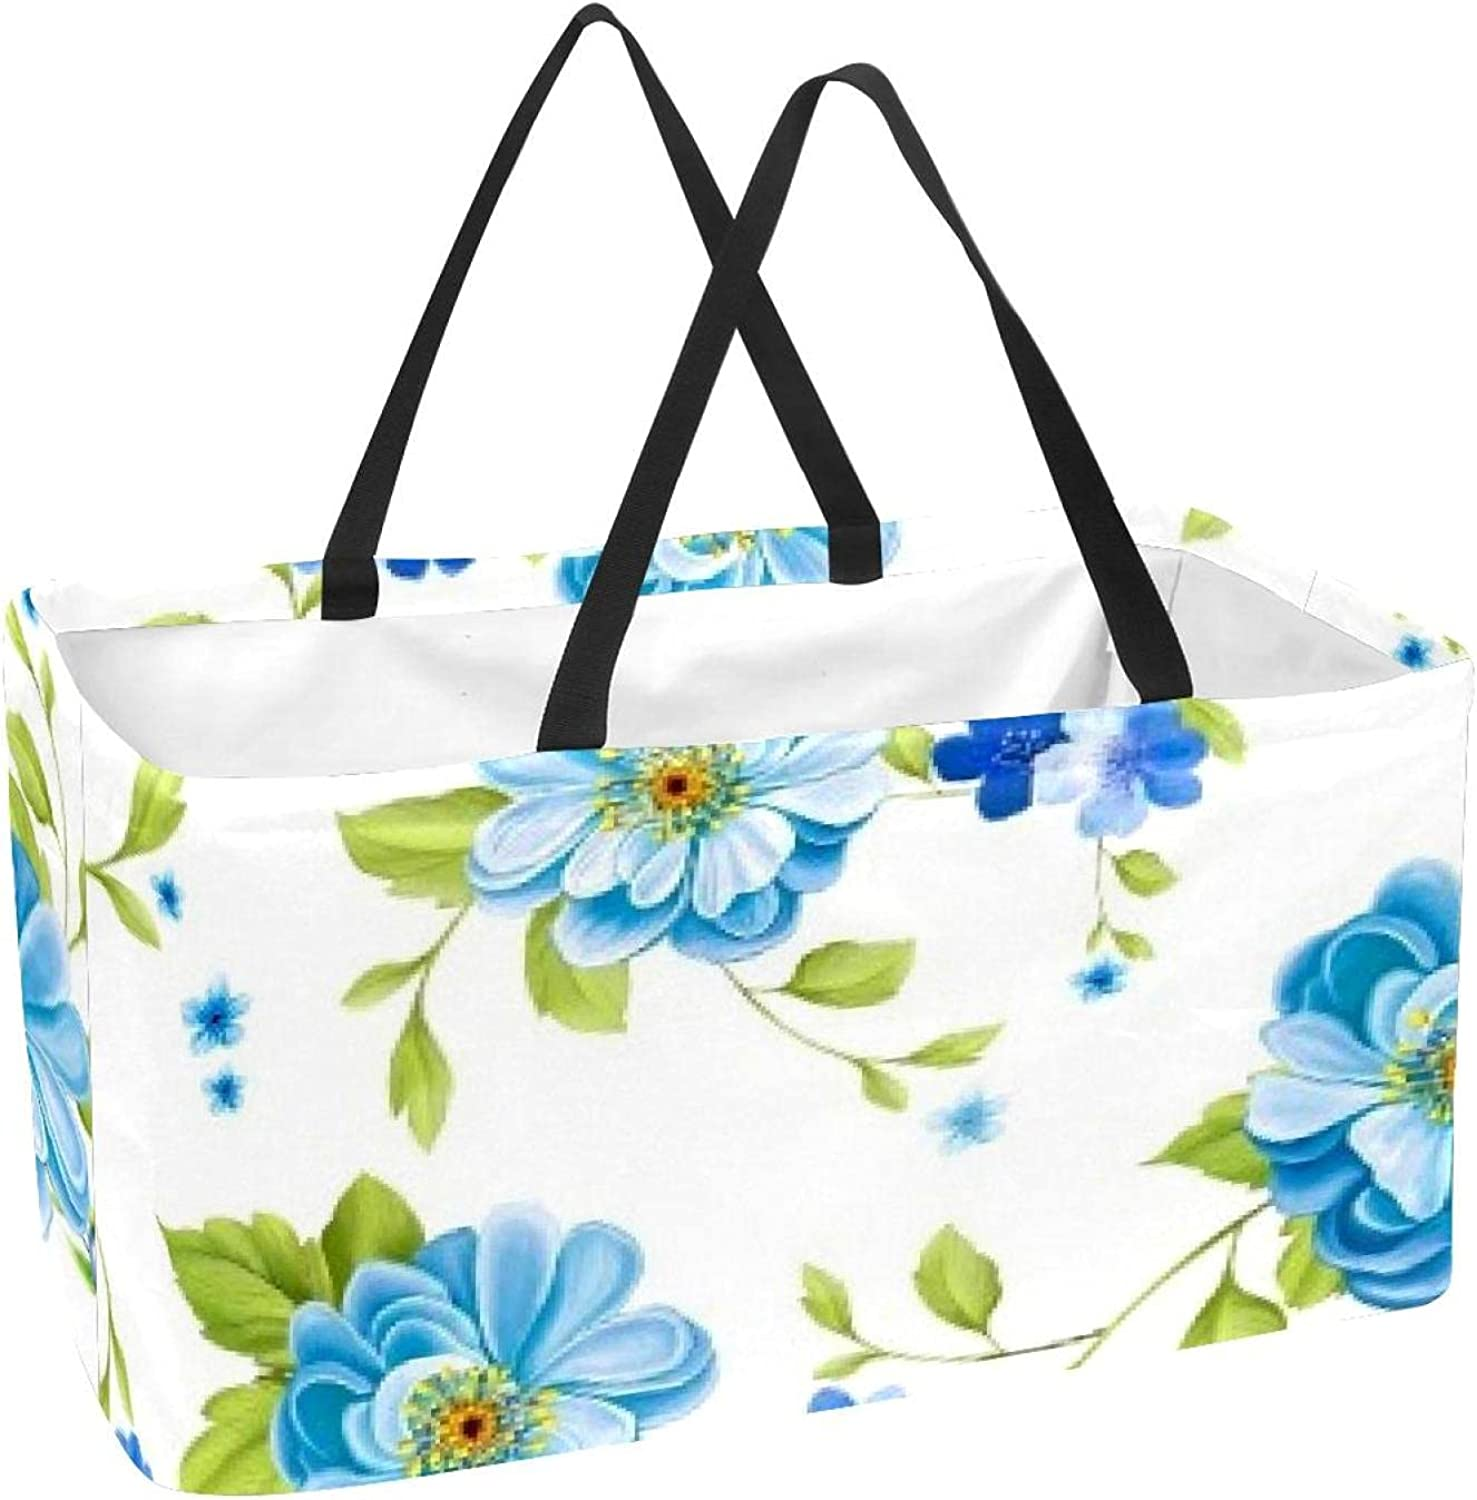 Large Shopping Baskets for Reusable Foldable Al sold out. Groceries Washable Jacksonville Mall